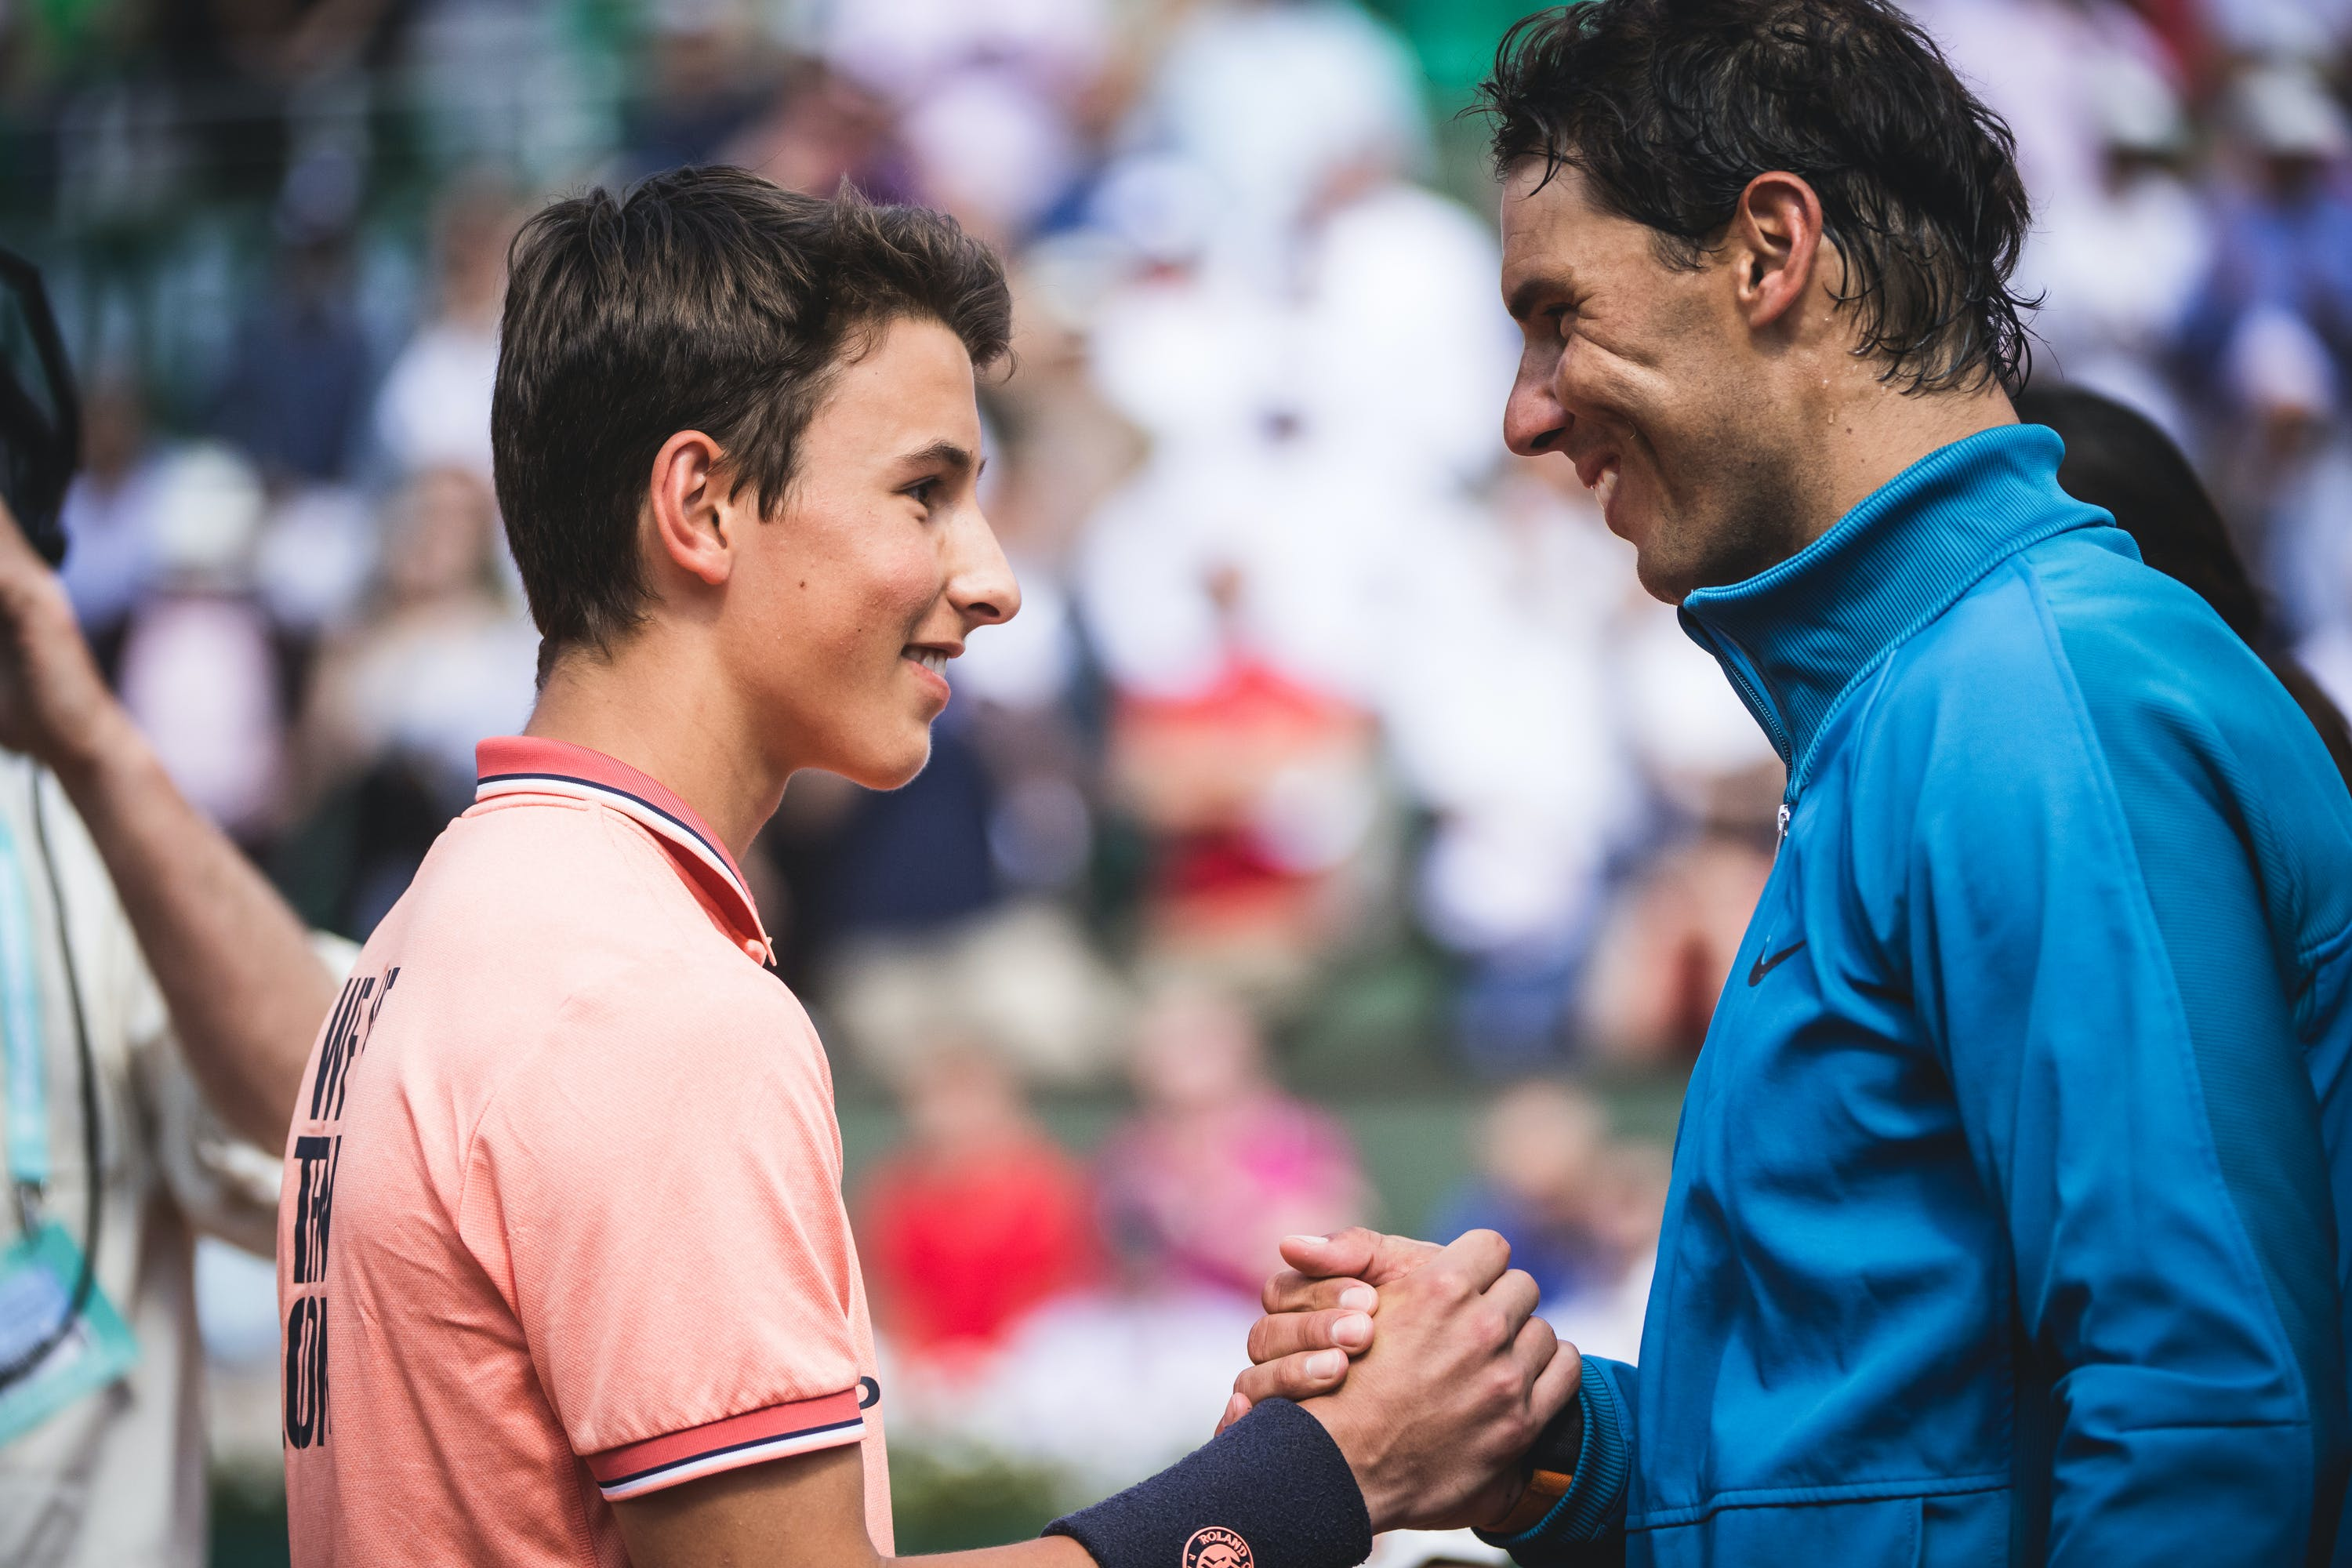 Rafael Nadal smiling and chatting with a Roland-Garros ballkid at RG18.